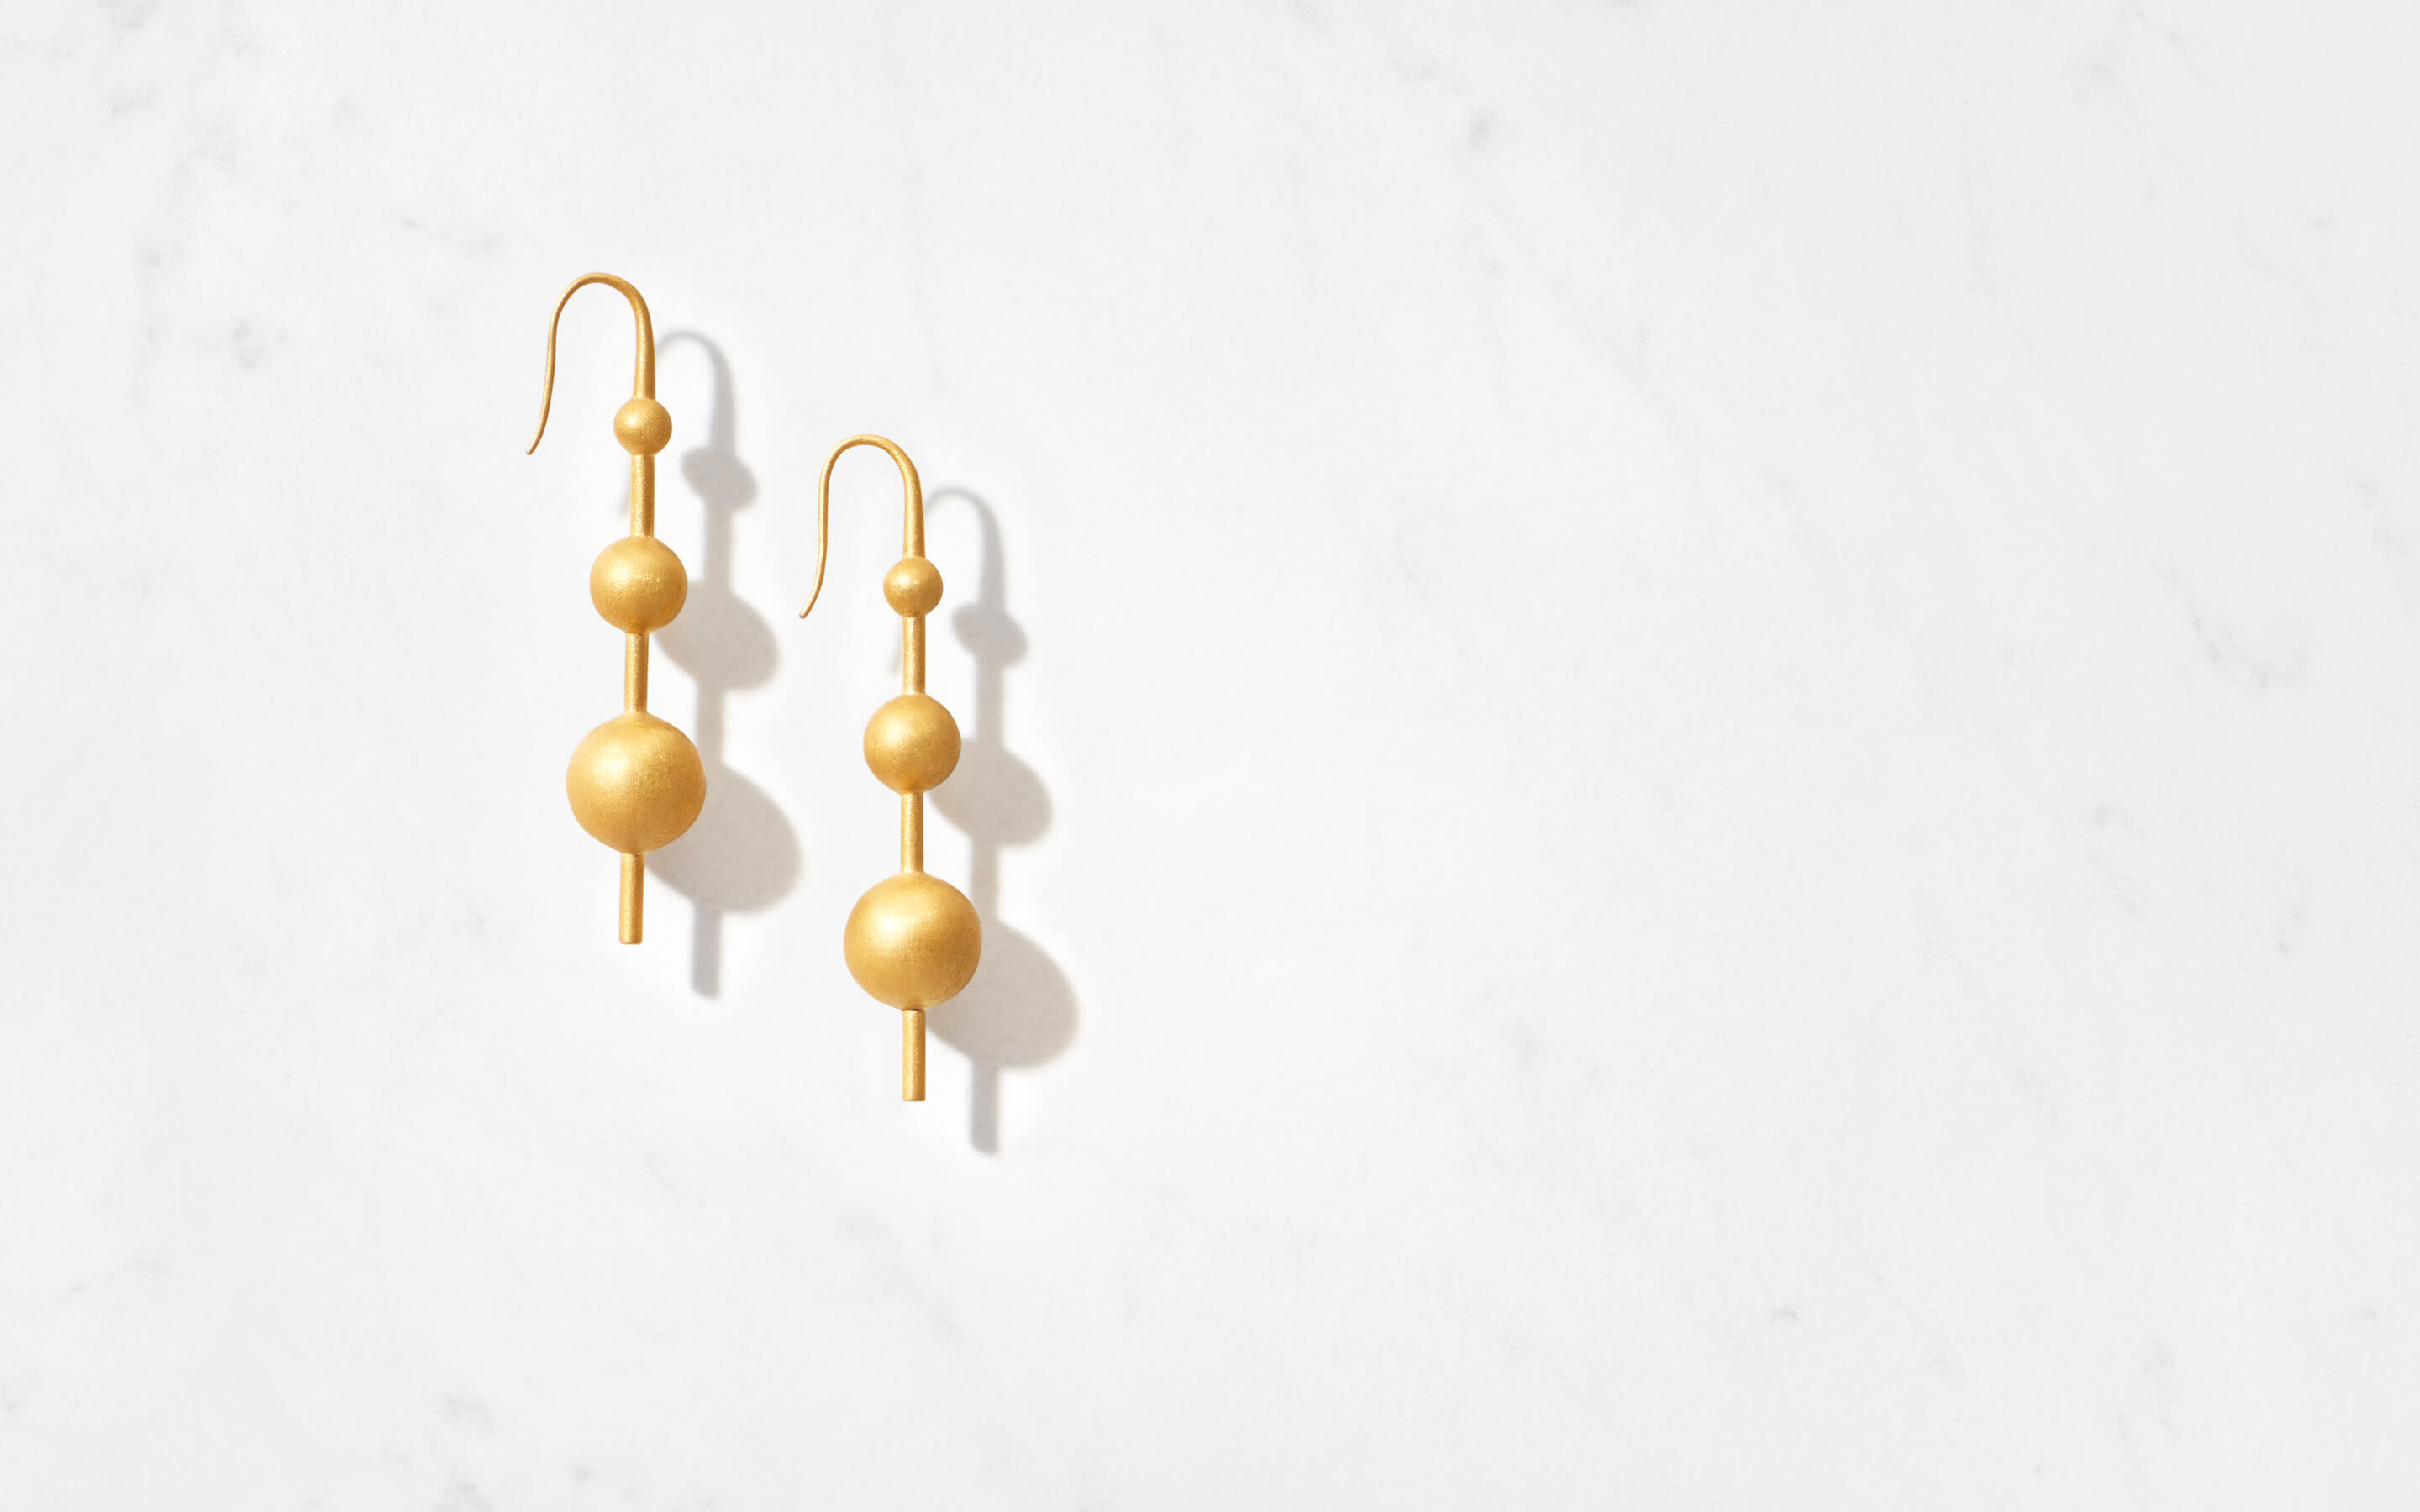 stylish 22 karat gold post earrings with three gradated globes in matte finish